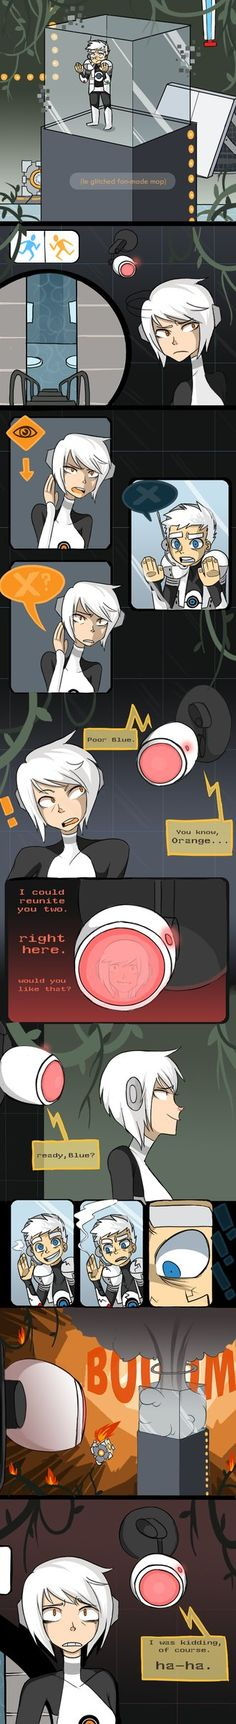 black comedy by perditionist on DeviantArt